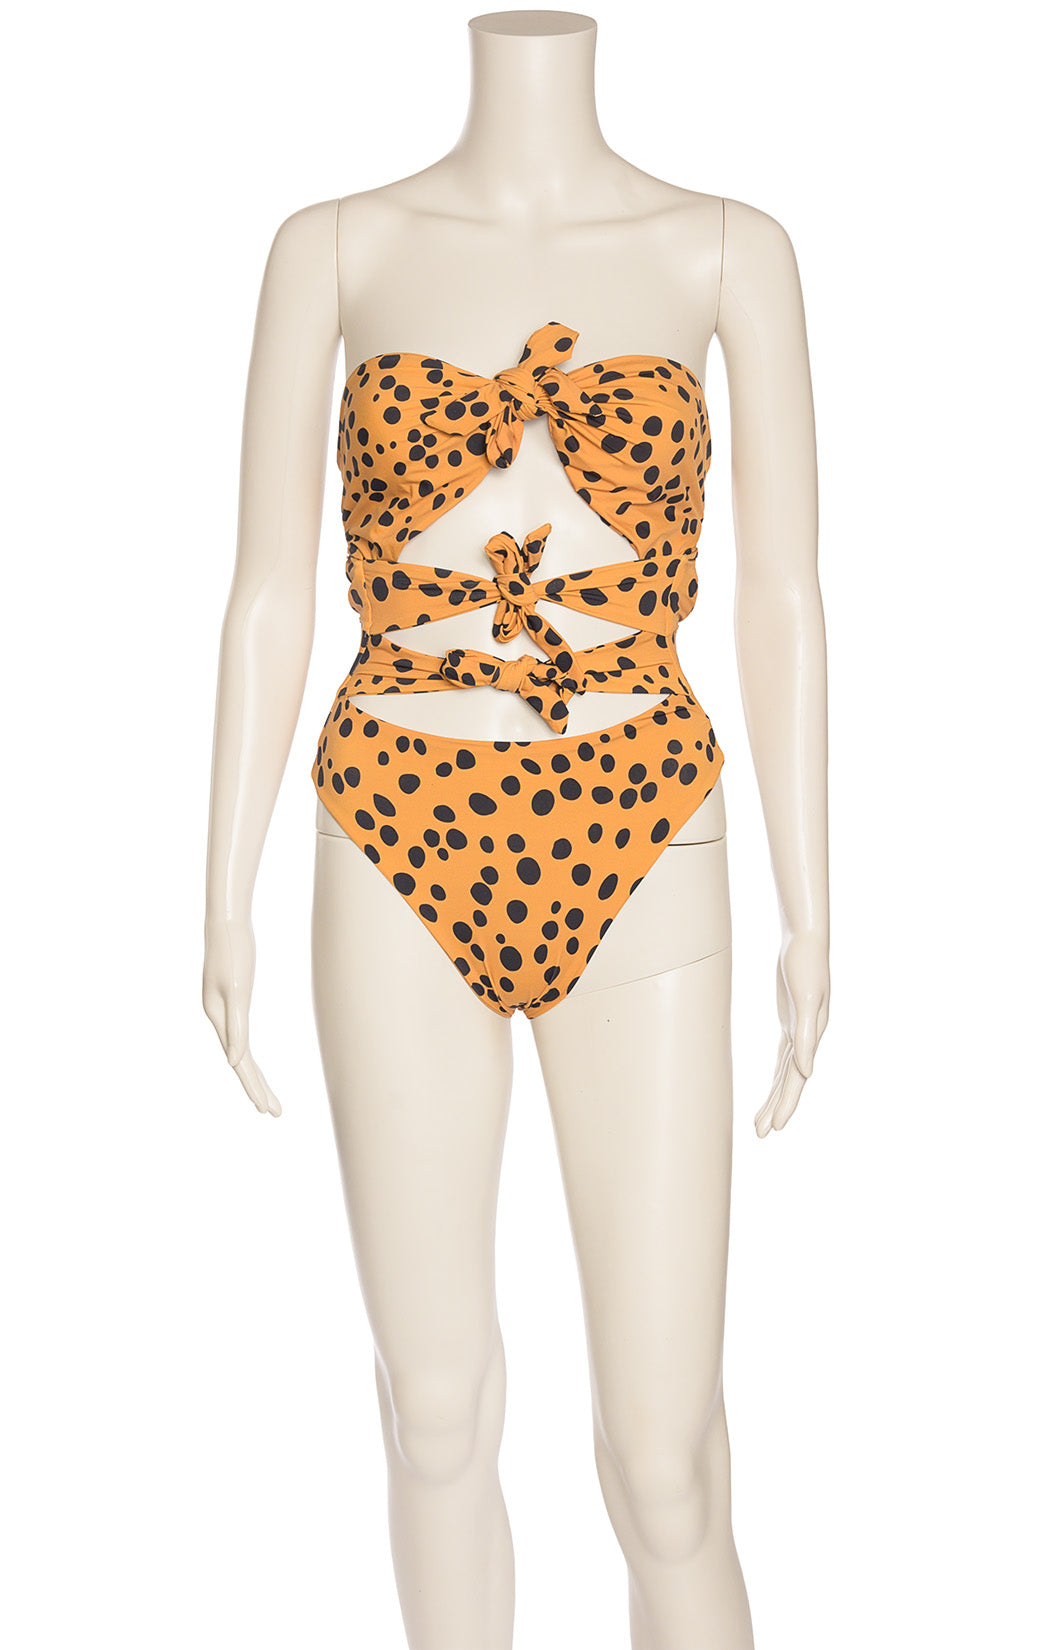 Dalmatian dot three tie front one piece bathing suit